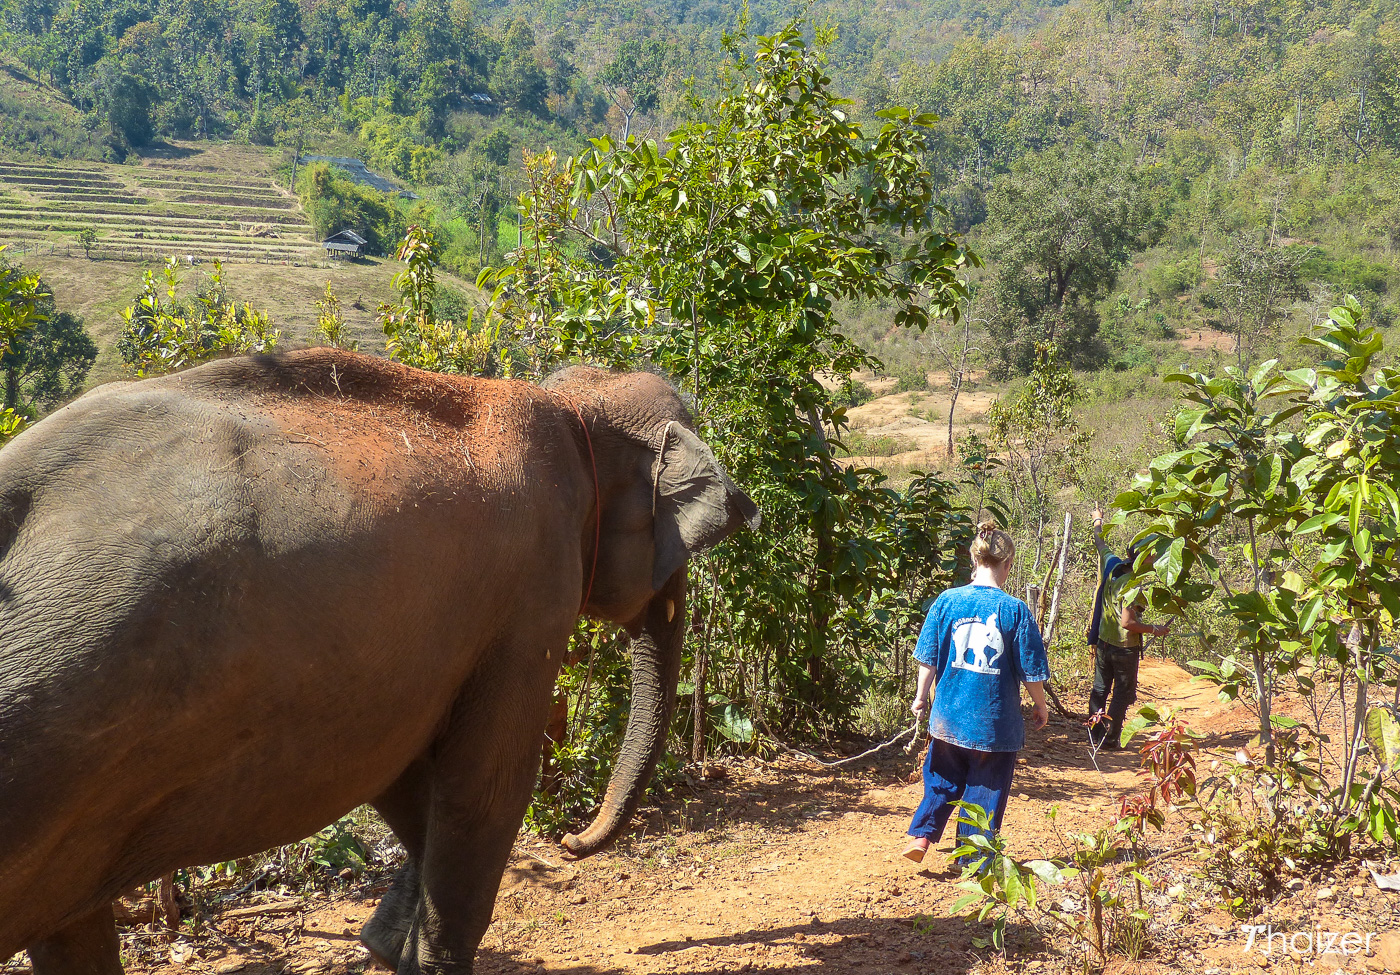 walking with elephants through the Mae Wang valley, Chiang Mai